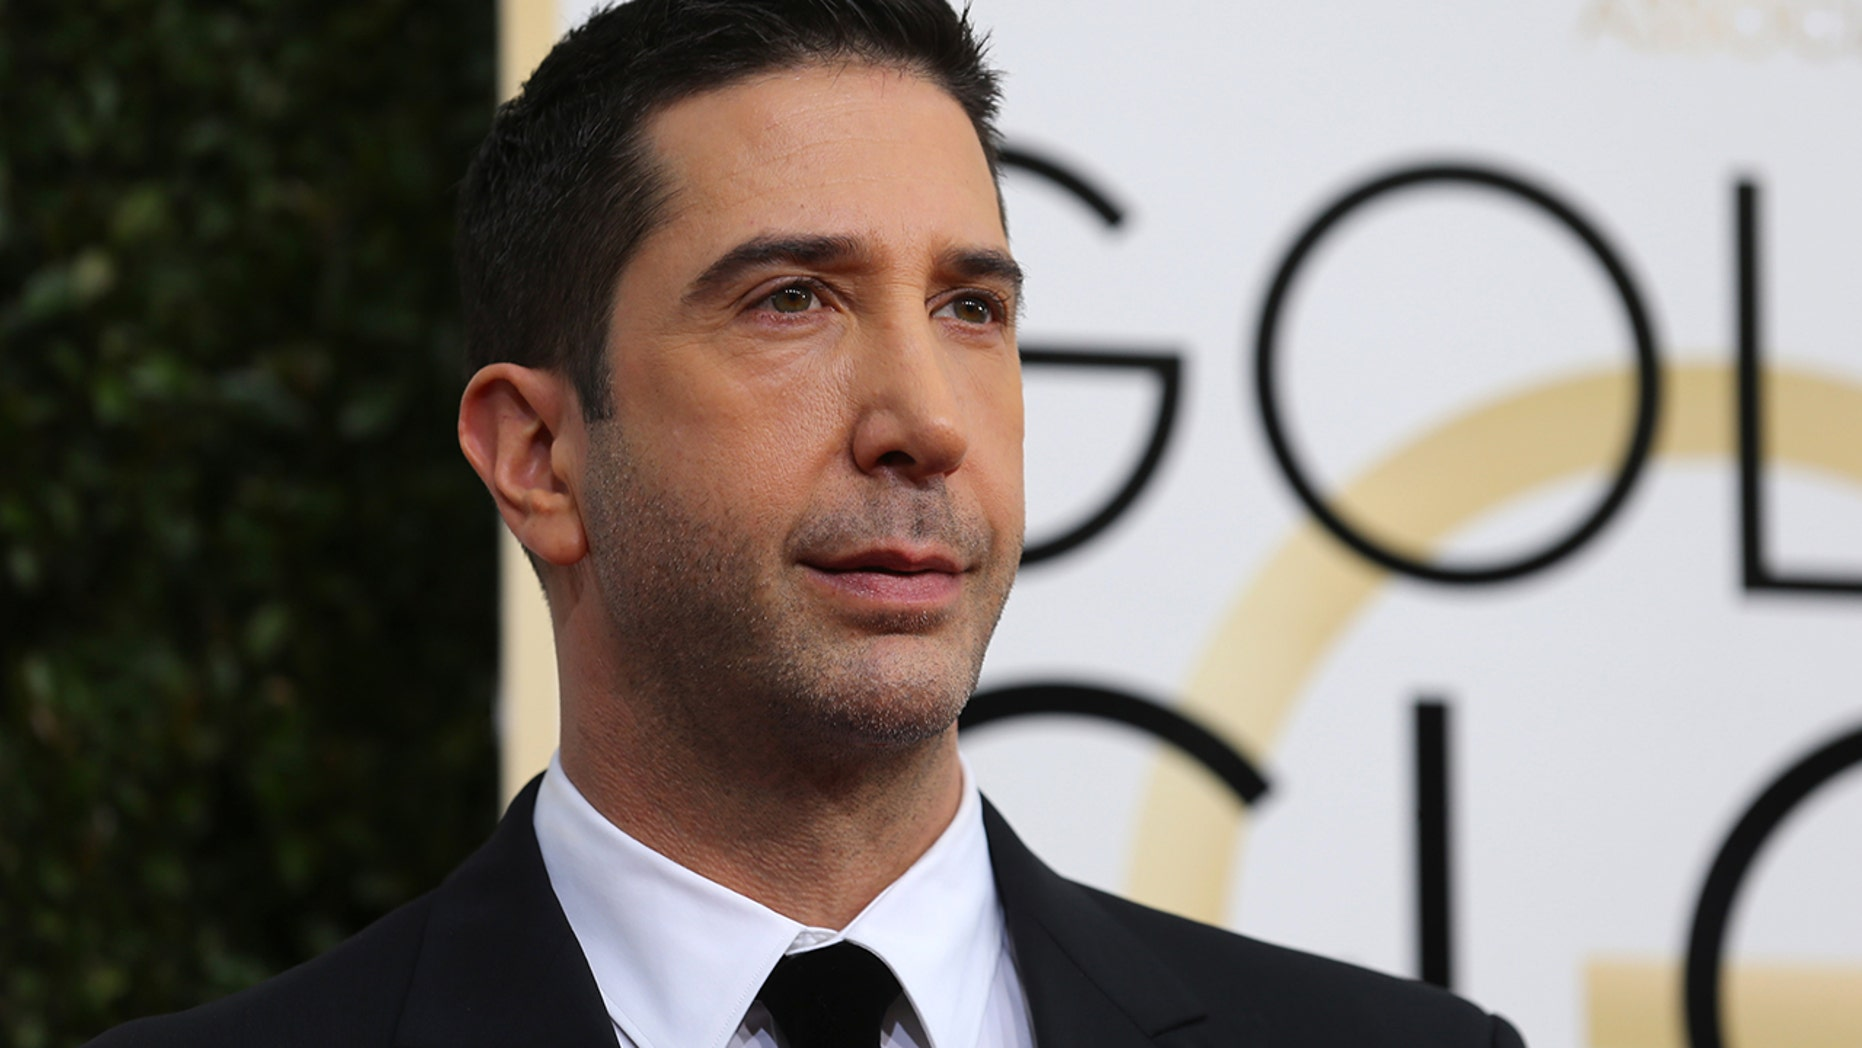 Actor David Schwimmer arrives at the 74th Annual Golden Globe Awards in Beverly Hills, California, U.S., January 8, 2017.